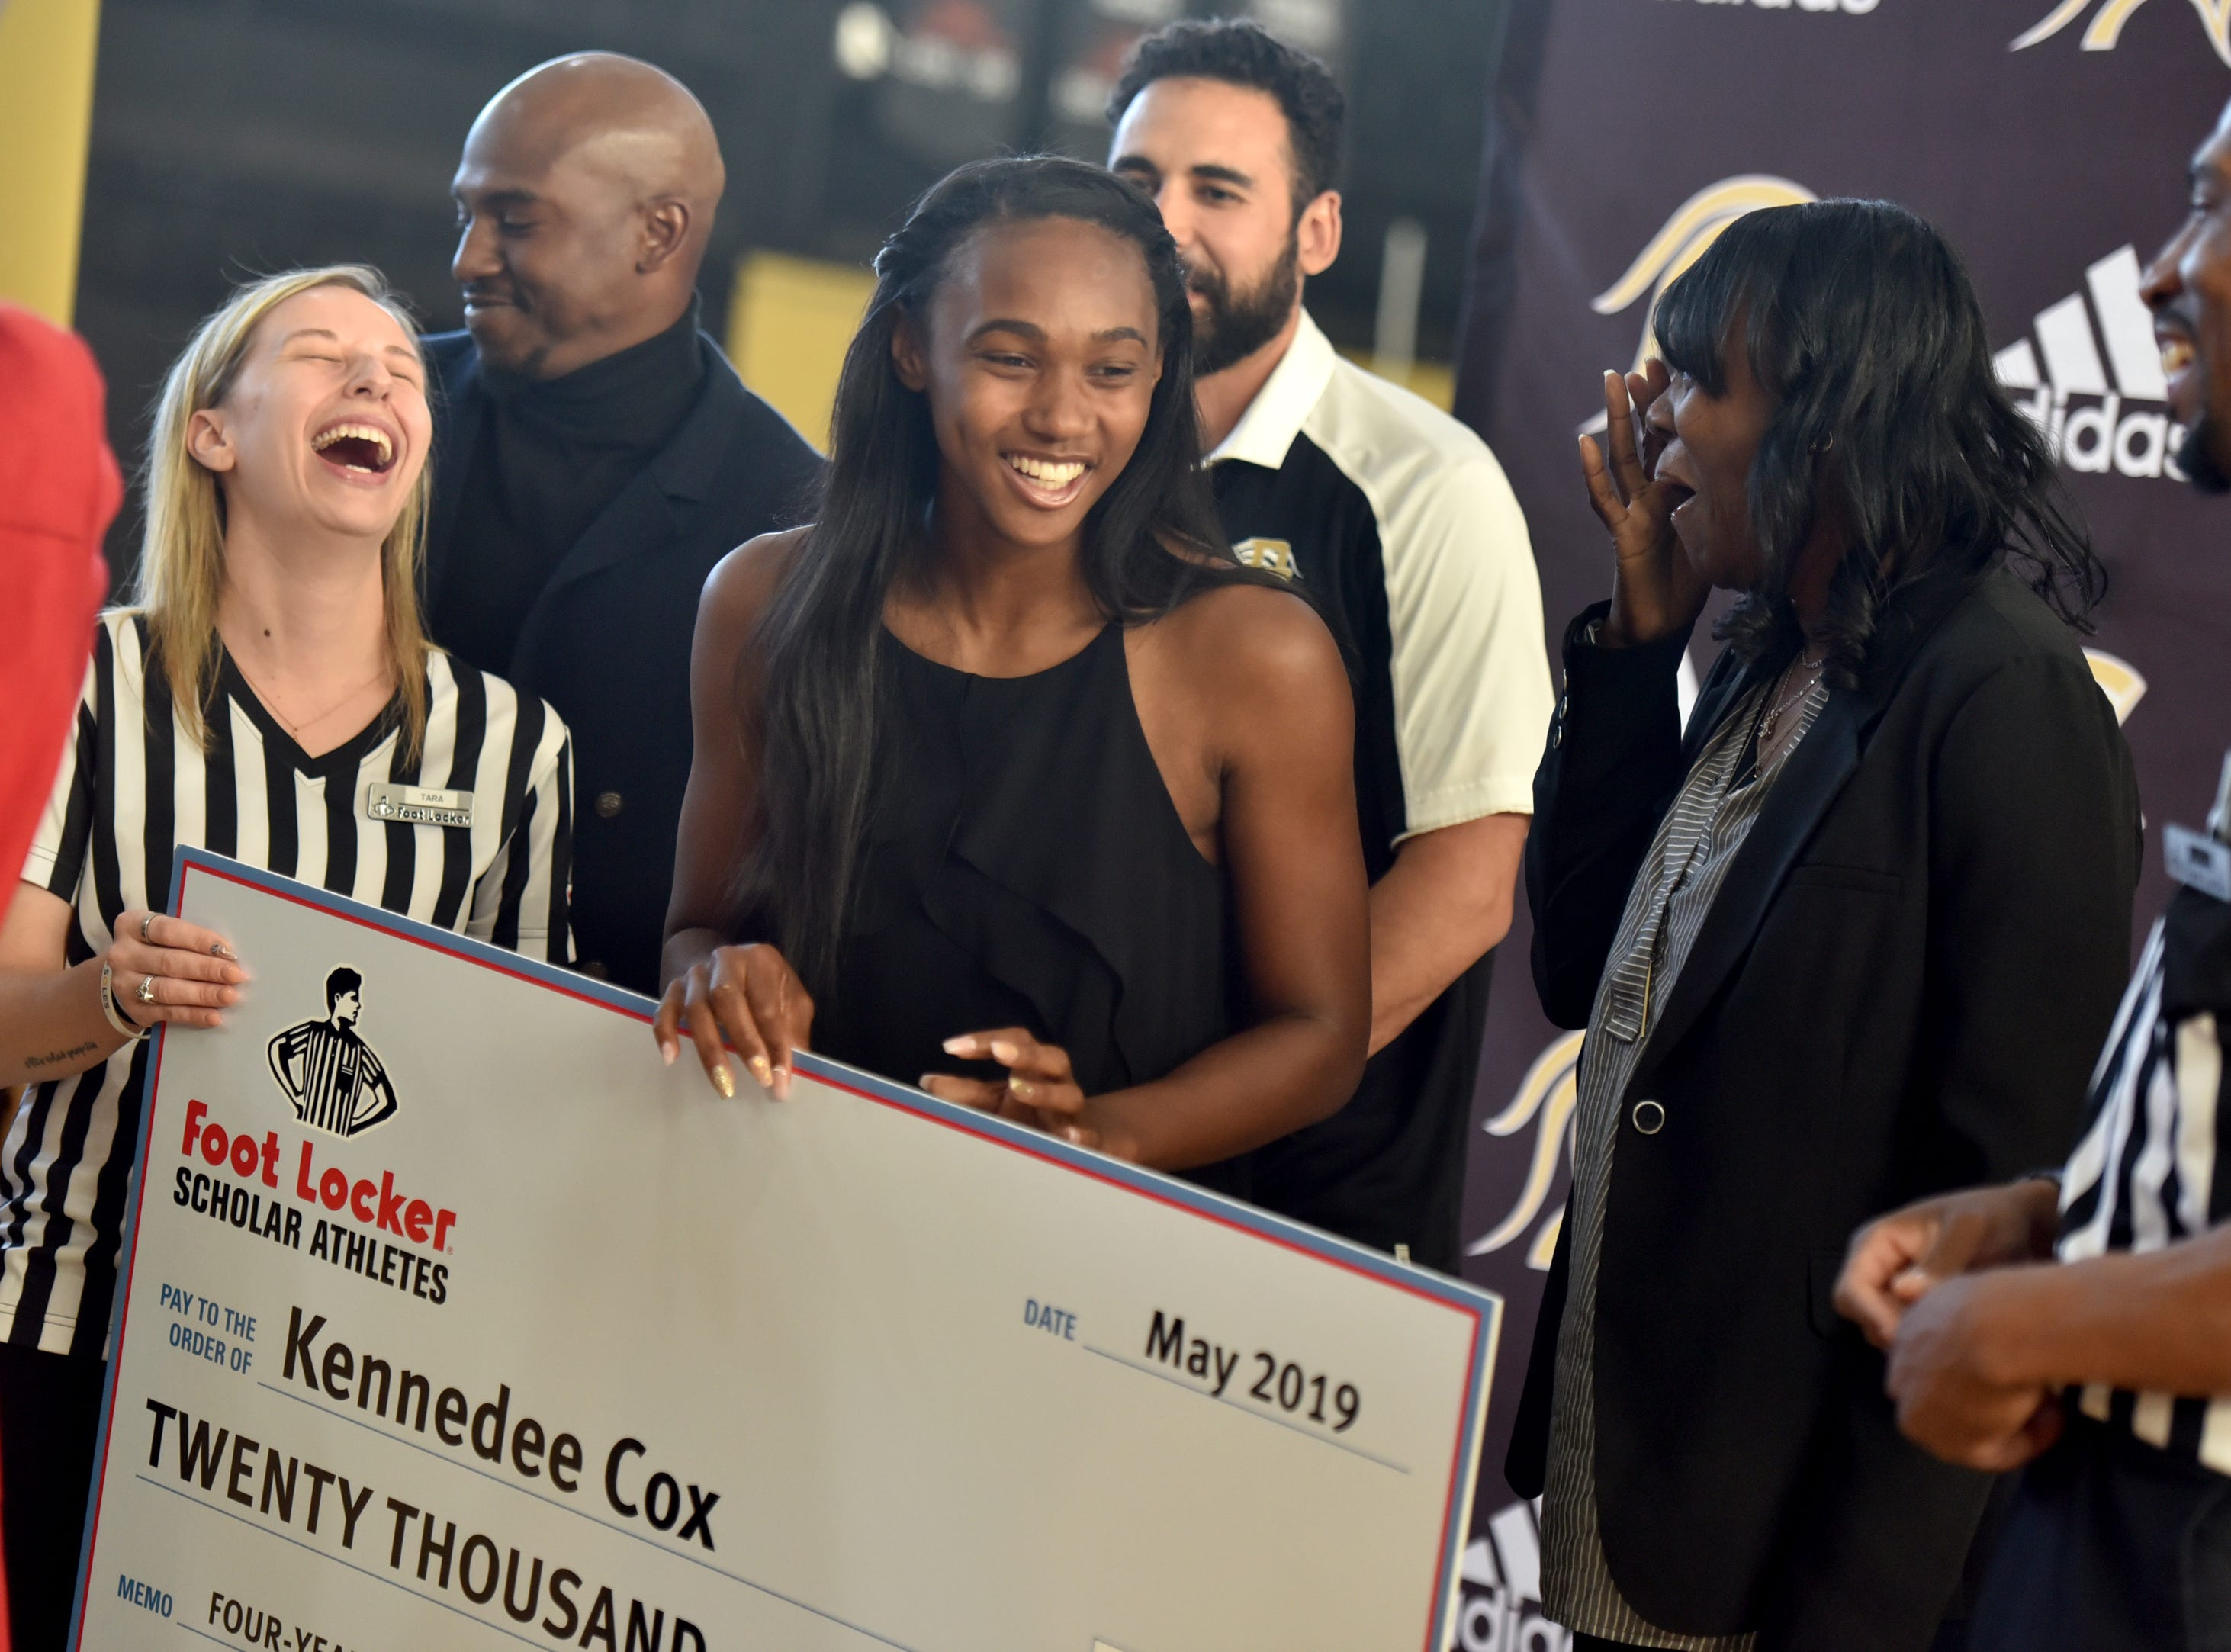 Tara Swett of Foot Locker, Paramus Catholic track coaches Brian Walker and Bryan Durango, Paramus Catholic senior Kennedee Cox and her mother Beverlee Garvin with Cox's $20,000 check from the Foot Locker Scholar Athletes Program. Foot Locker representatives surprised Cox with the announcement at school on Wednesday, May 15, 2019.